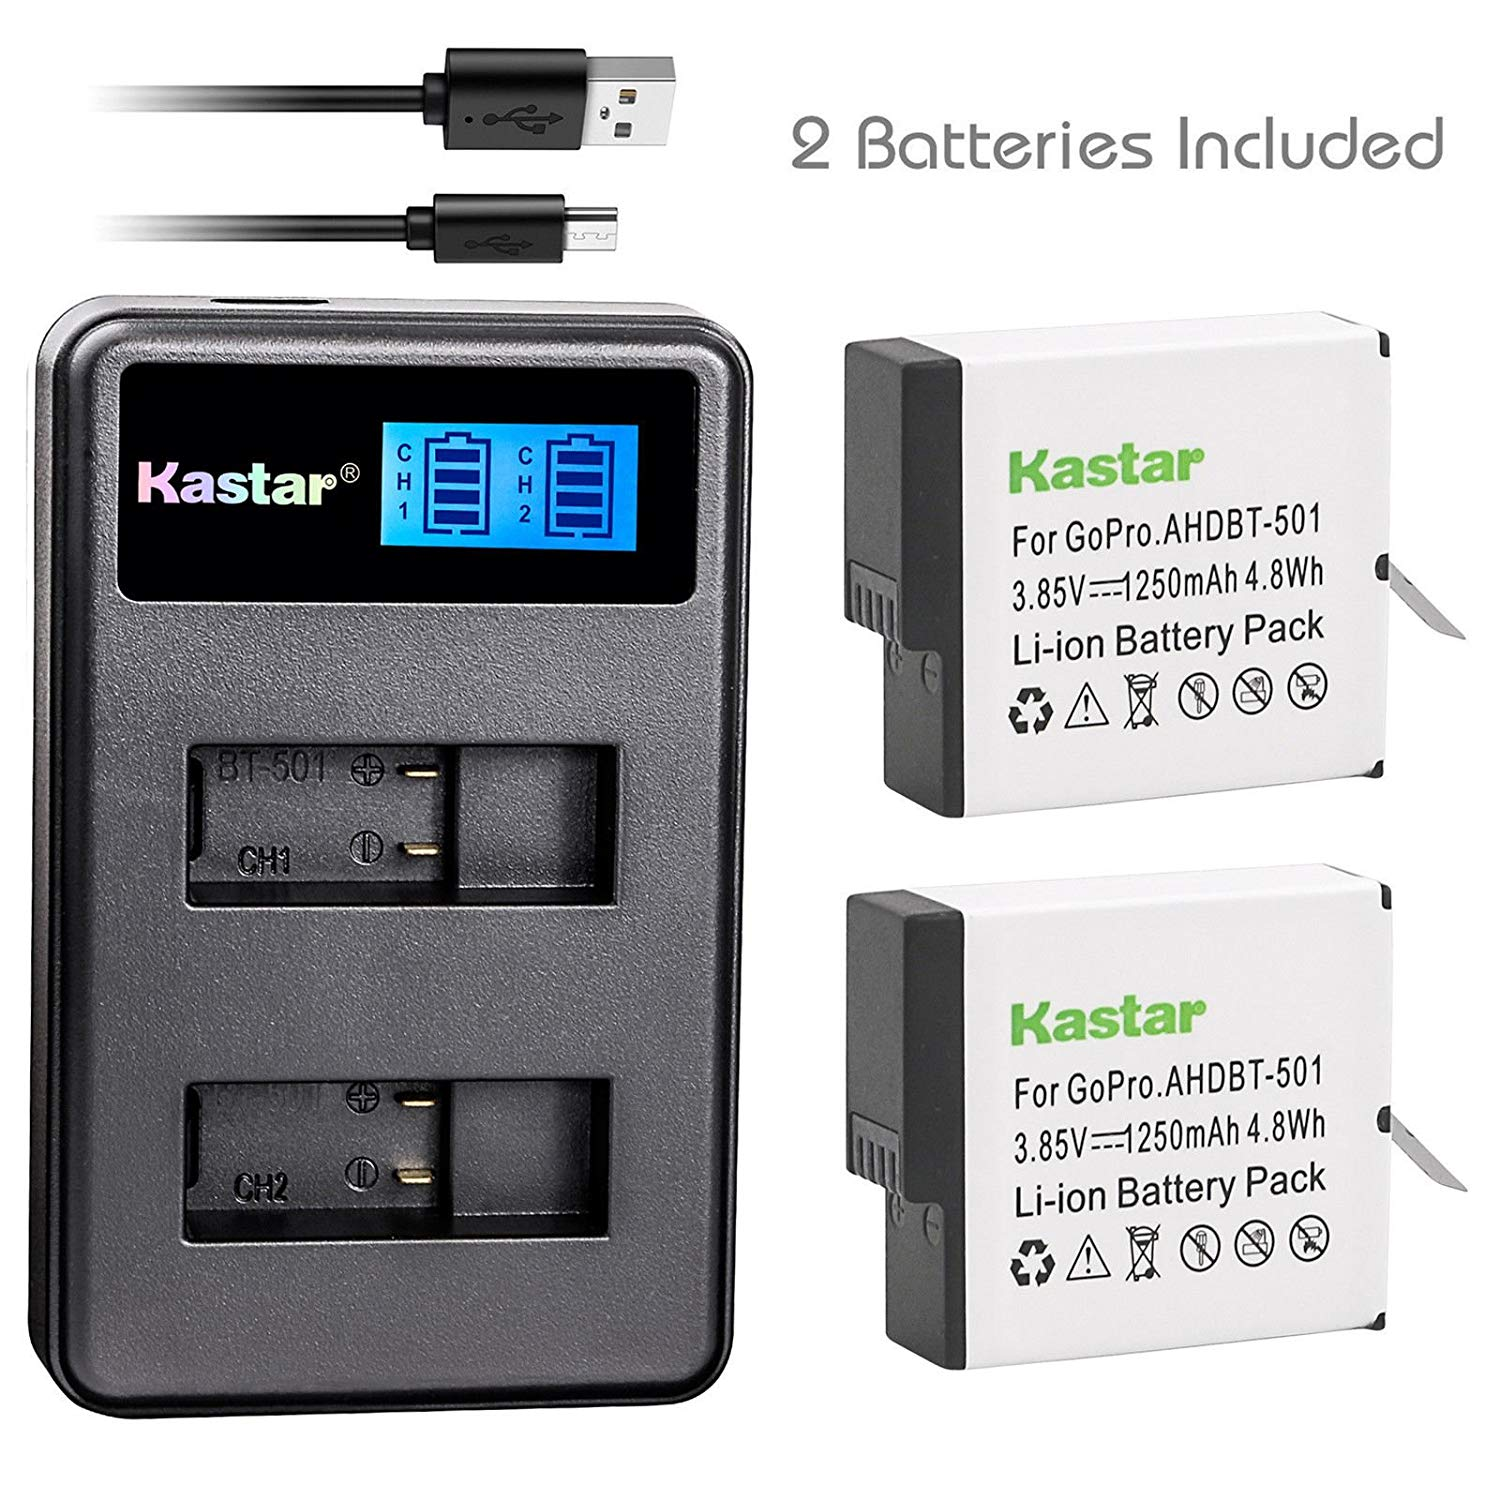 Kastar Battery 2 Pack and LCD Dual Charger for GoPro HERO GoPro AHDBT-501 GoPro AHBBP-501 & Gopro Hero 5 Action Camera GoPro HERO5 Black GoPro Hero 5 HD Black GoPro HERO5 Silver GoPro Hero 6 HD Silver